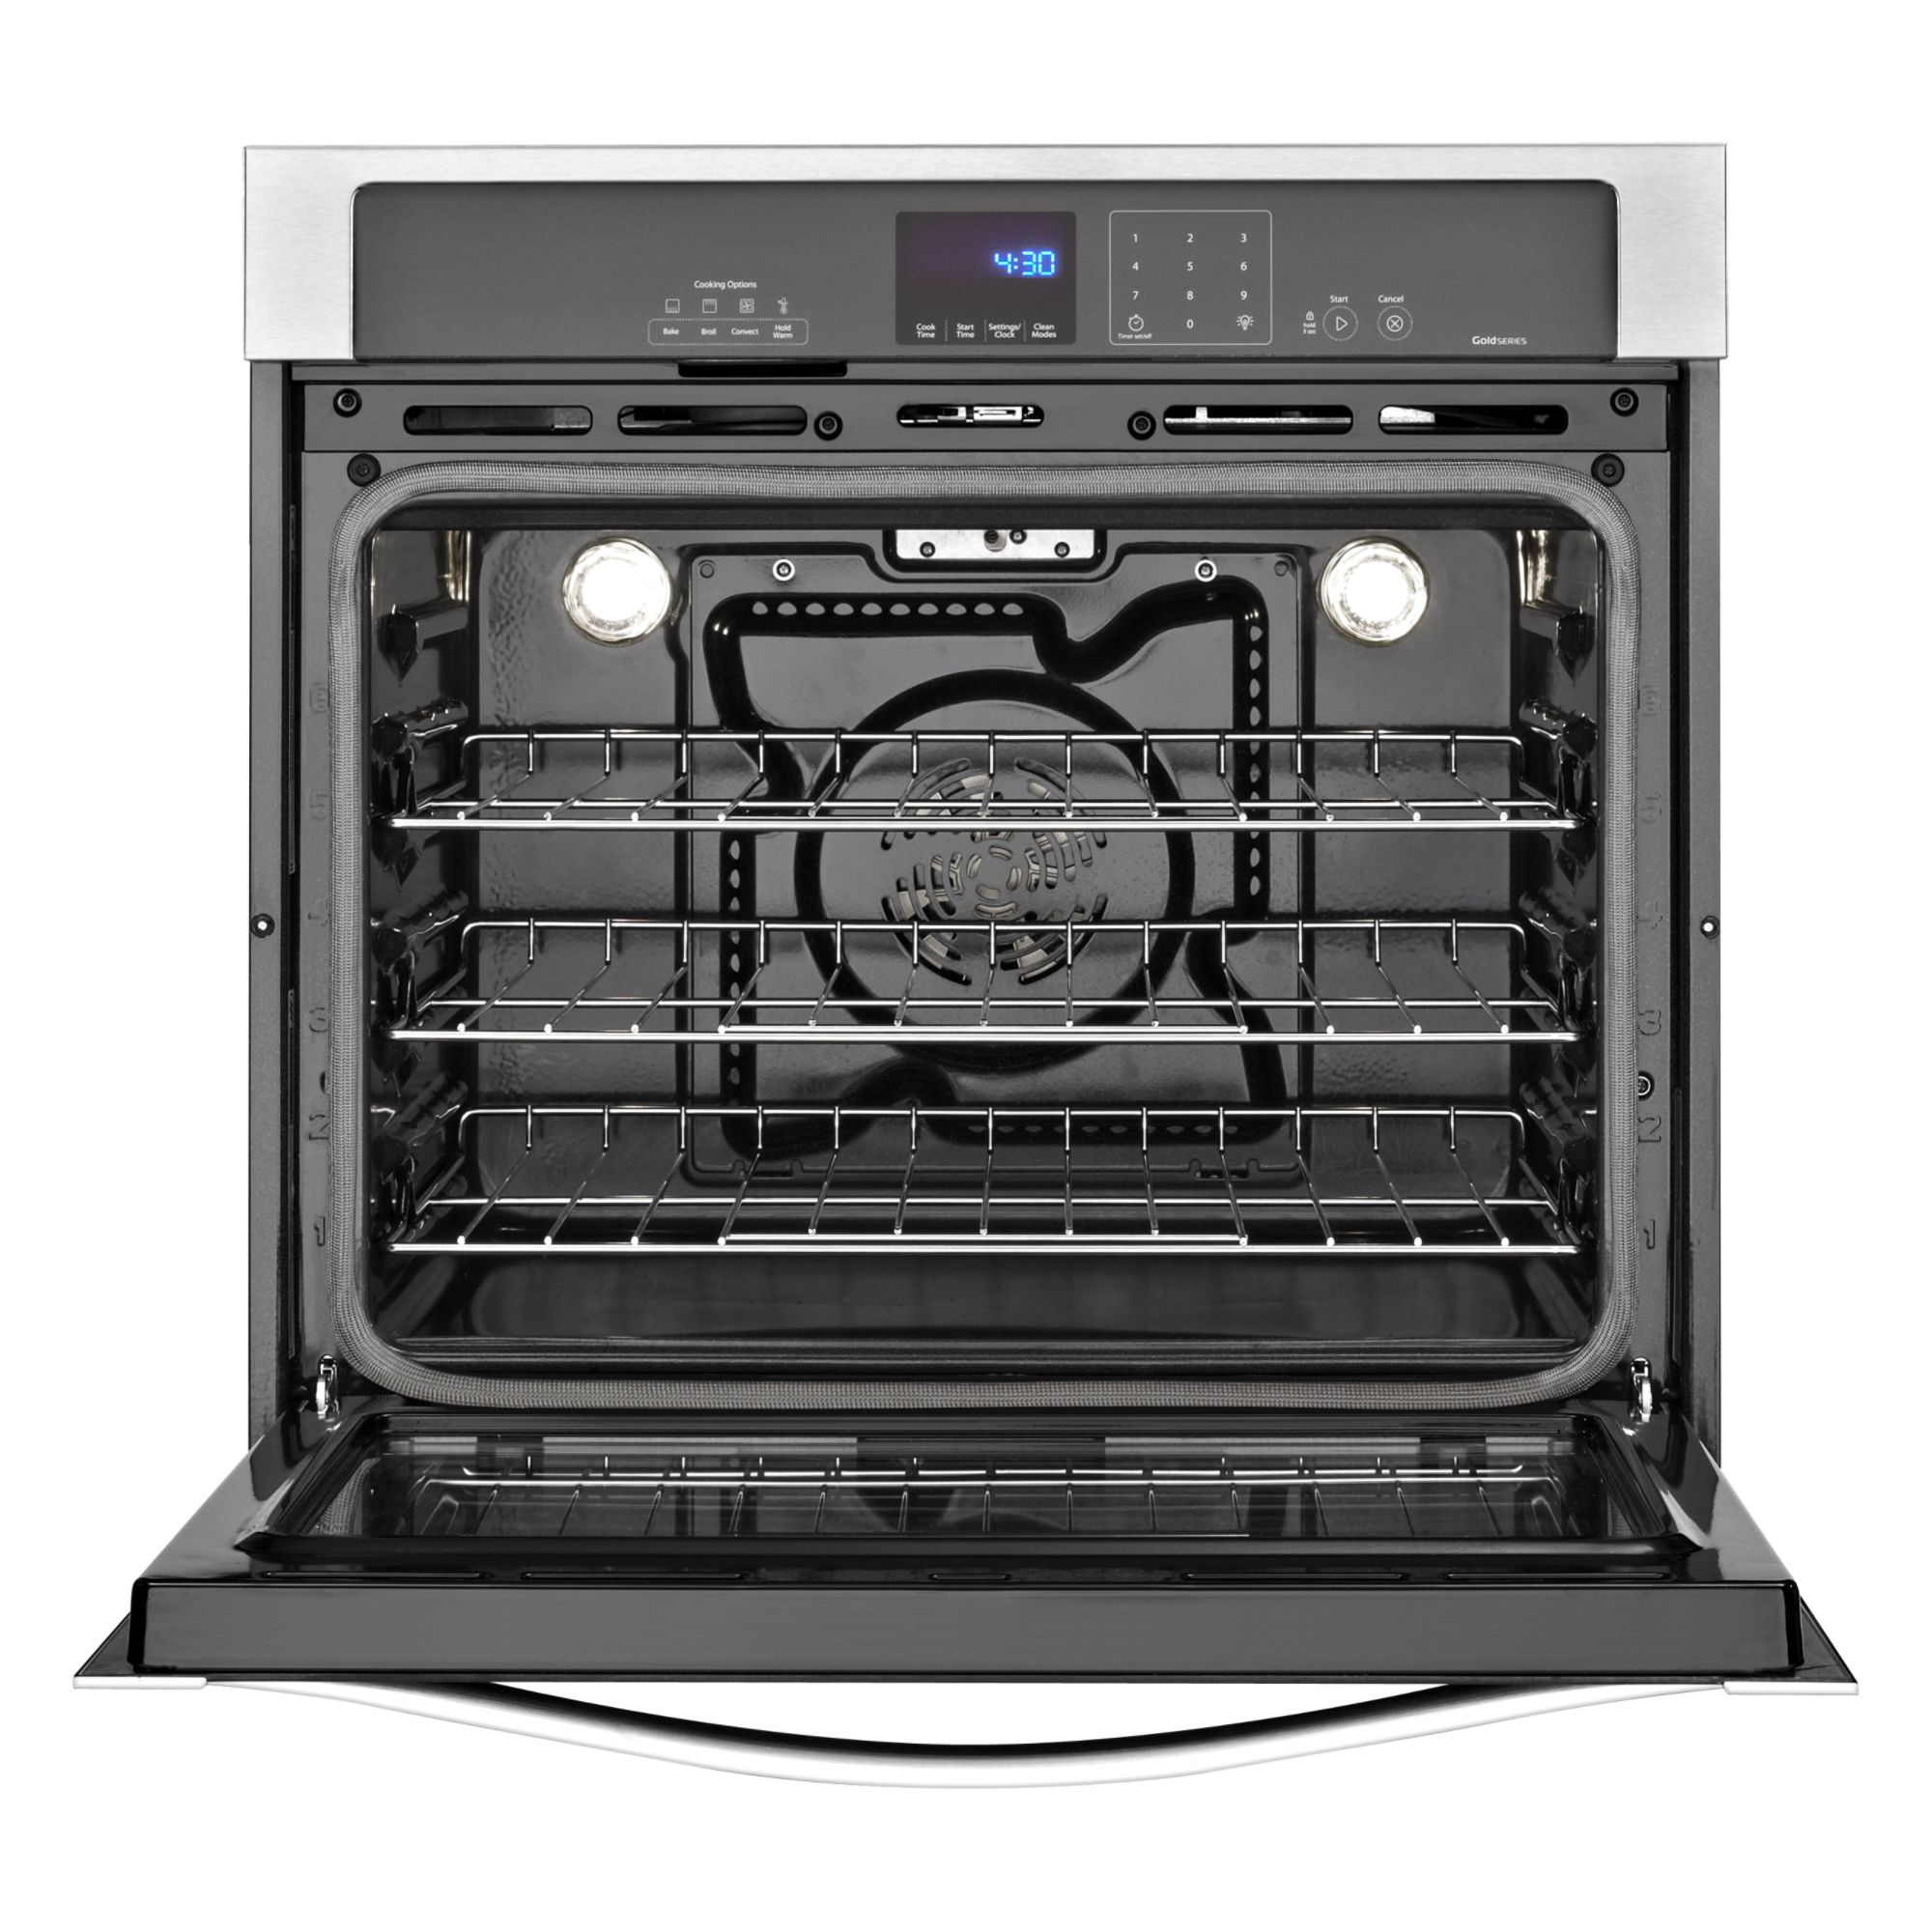 "Whirlpool Gold WOS92EC0AS 30"" Electric Wall Oven w/ TimeSavor™ Ultra True Convection - Stainless Steel"